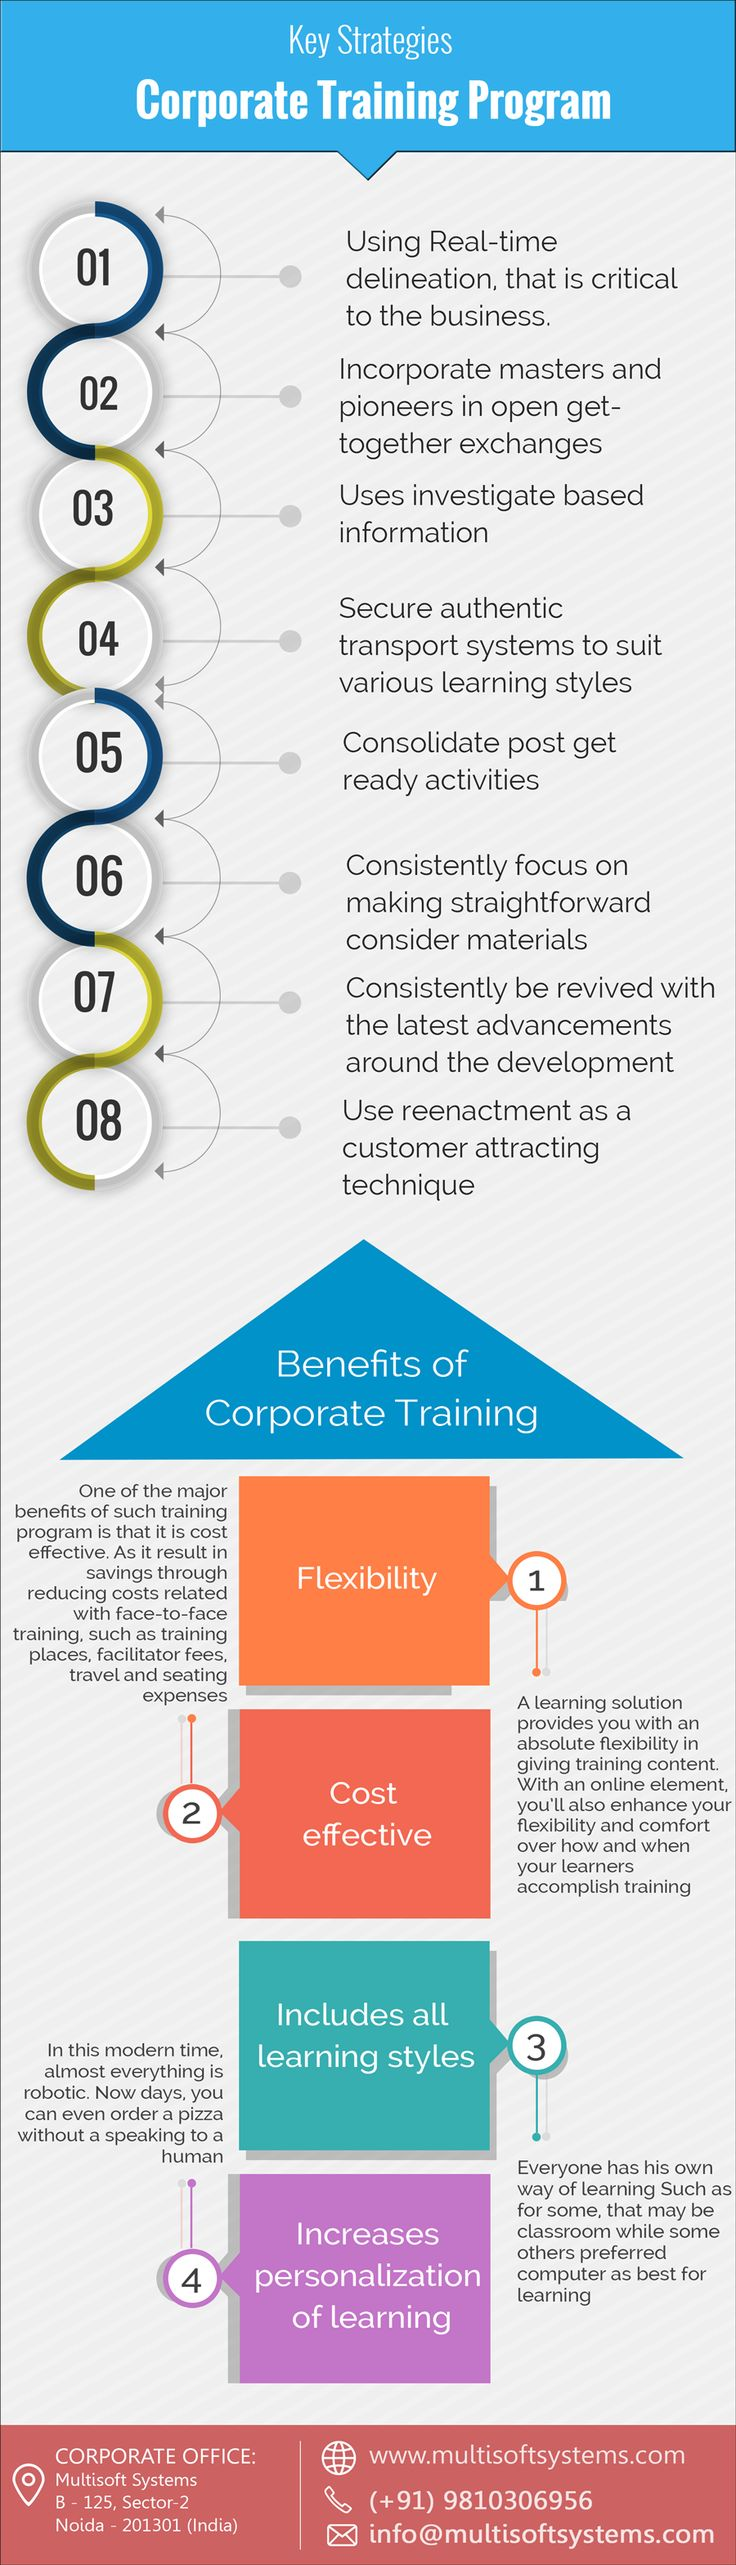 Key Strategies #CorporateTrainingProgram Read More @ http://www.multisoftsystems.com/trainings/onsite-corporate-training #CorporateTraining #MarketingStrategist #ExecutiveCoaching #coaching #learning and #development #MultisoftSystems